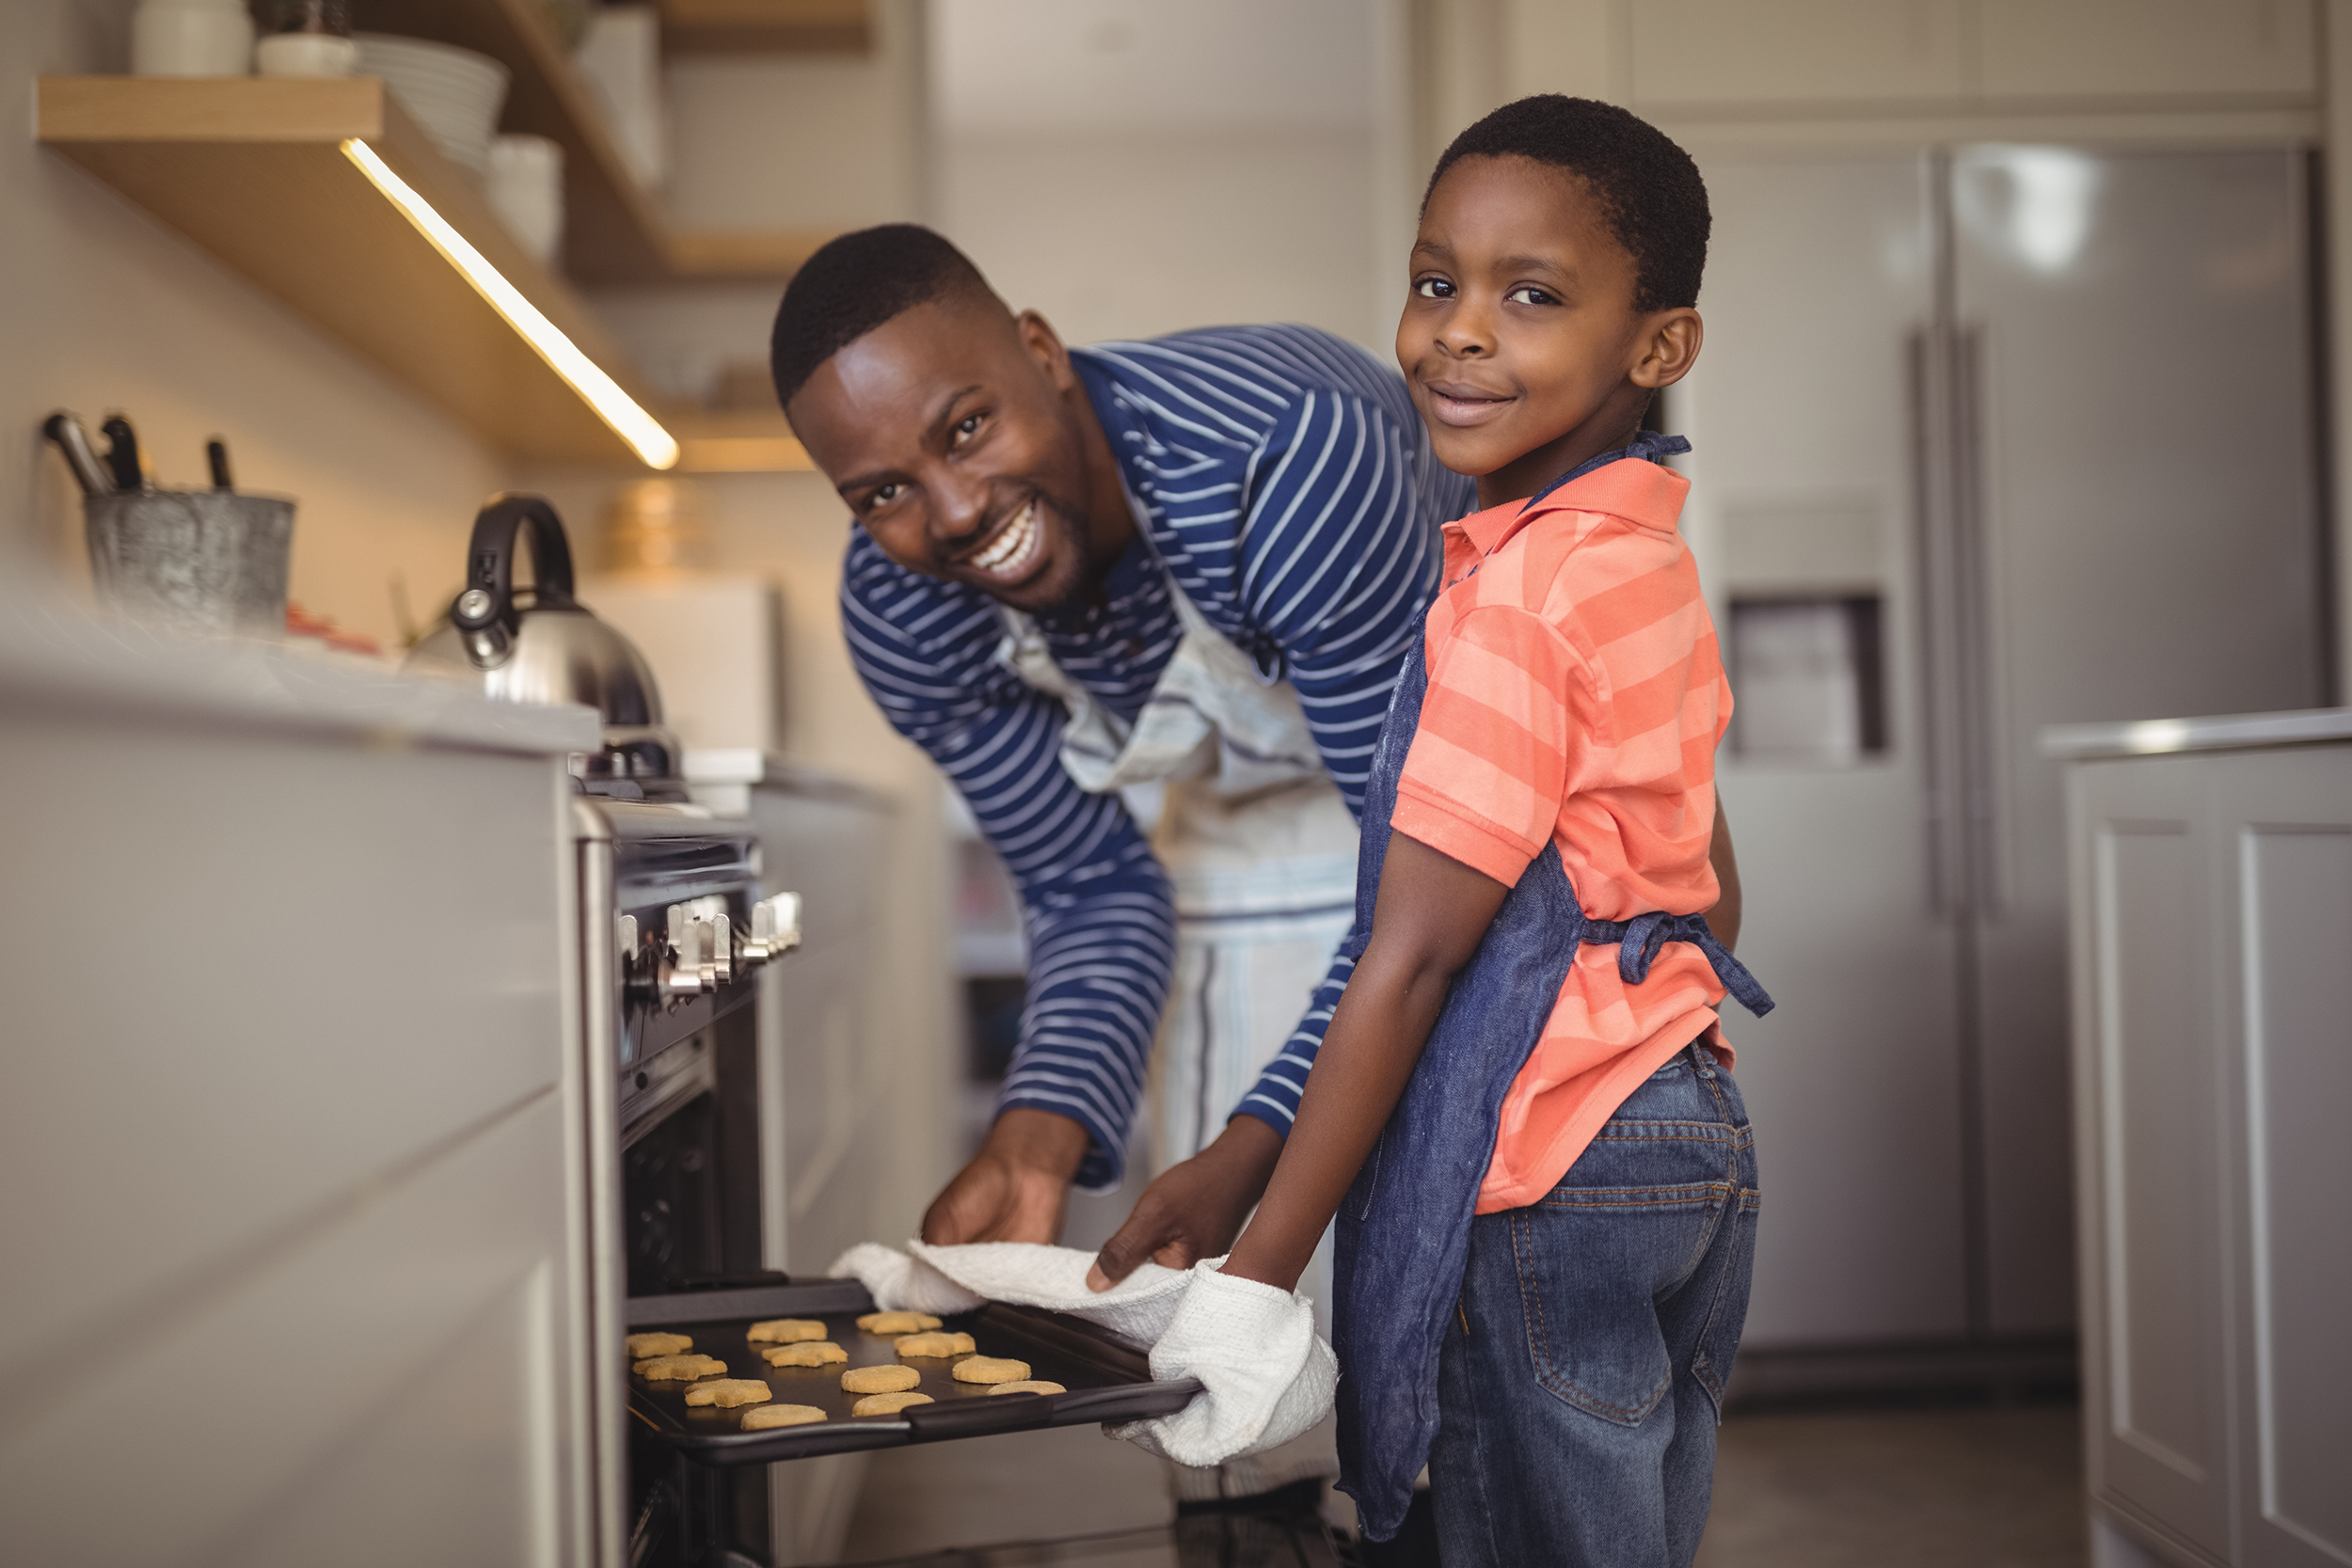 African American father and son in the kitchen baking cookies.